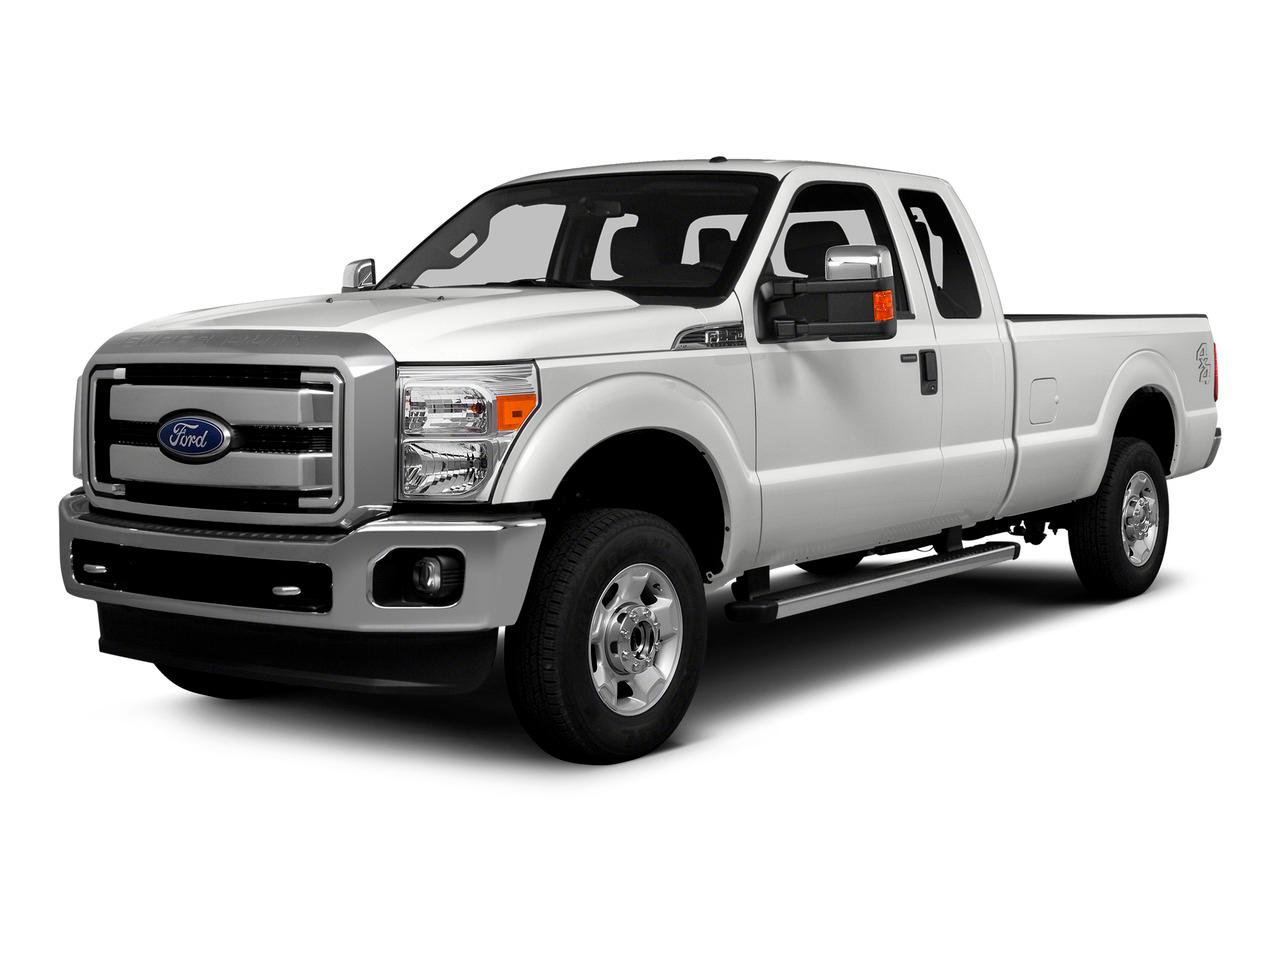 2016 Ford Super Duty F-250 SRW Vehicle Photo in EXTON, PA 19341